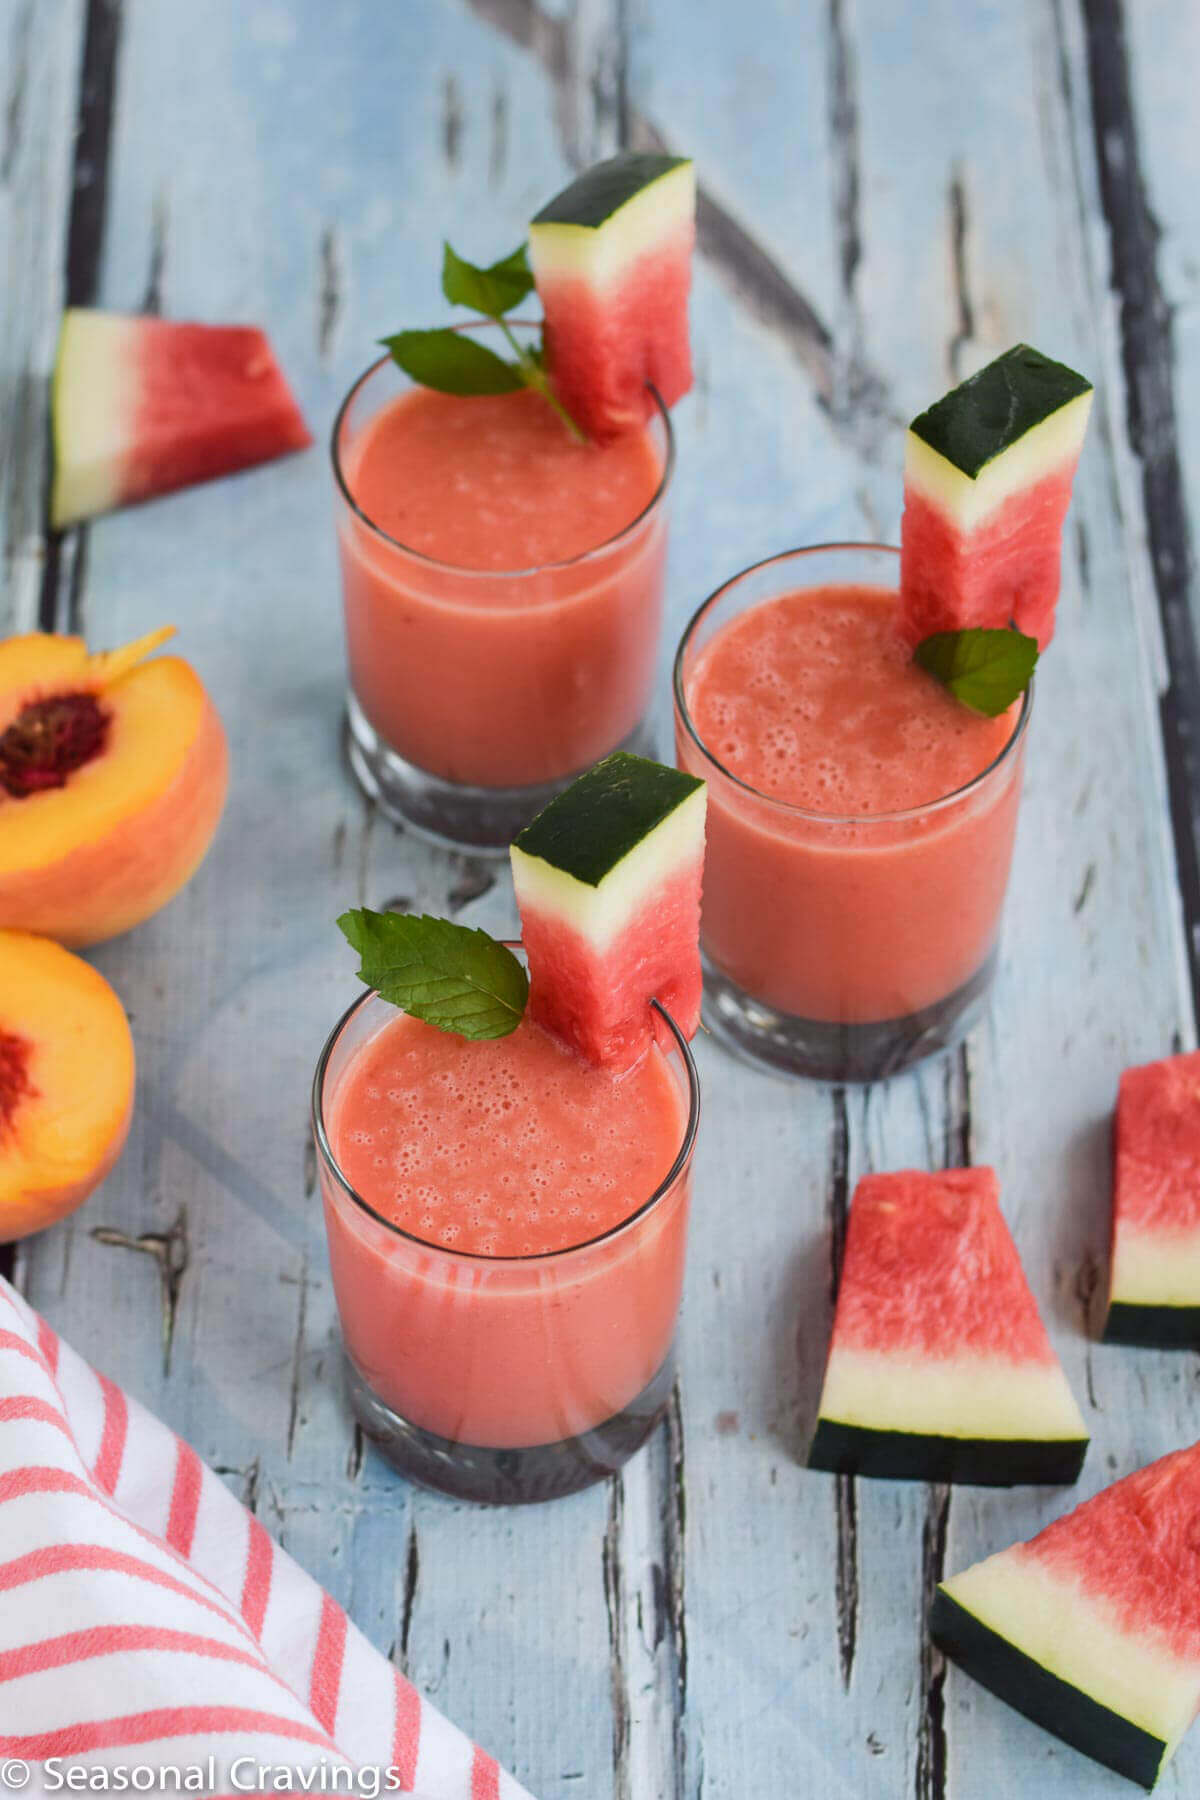 Vegan Watermelon Peach Smoothie